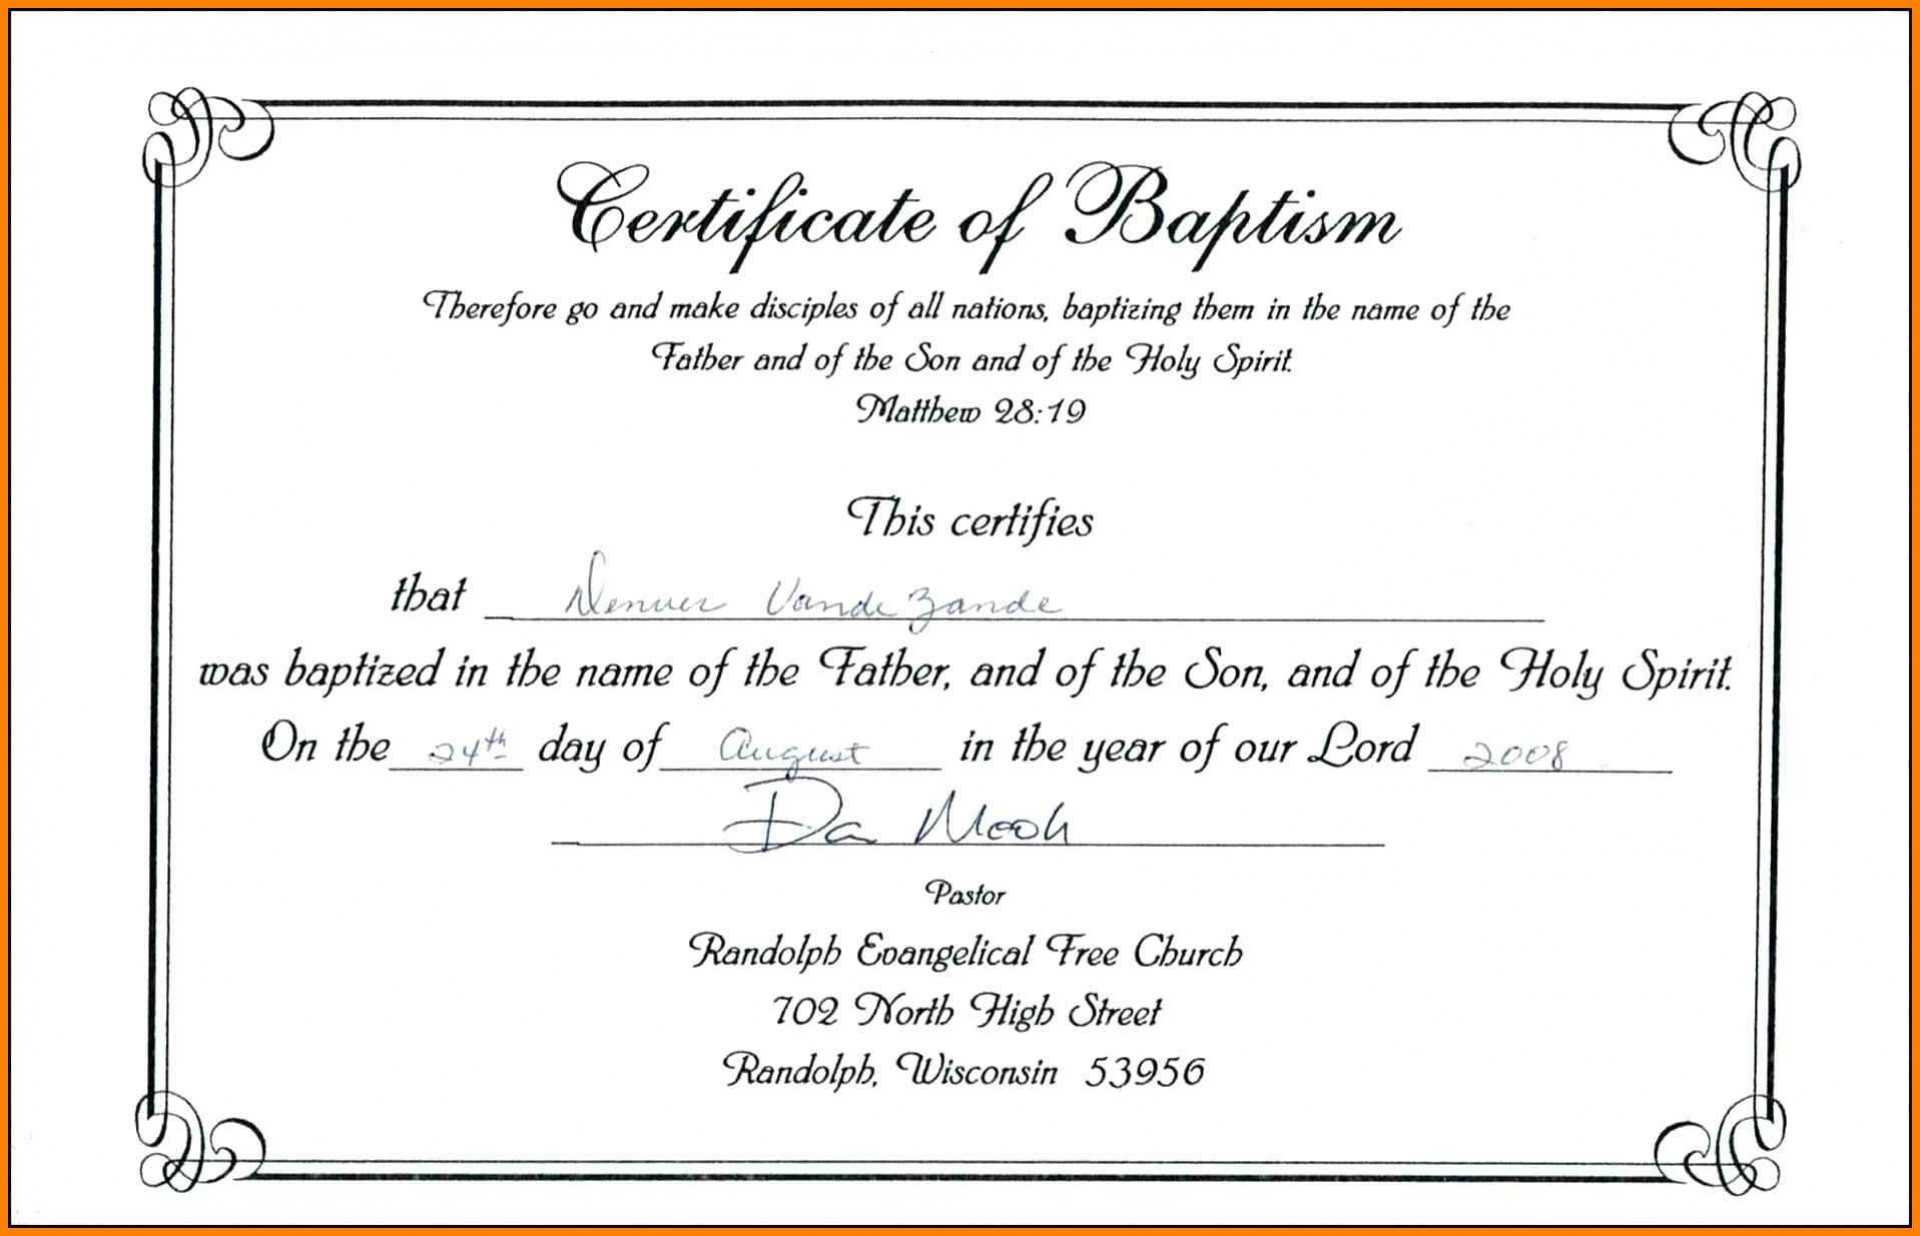 003 Certificate Of Baptism Template Ideas Unique Catholic Intended For Roman Catholic Baptism Certificate Template